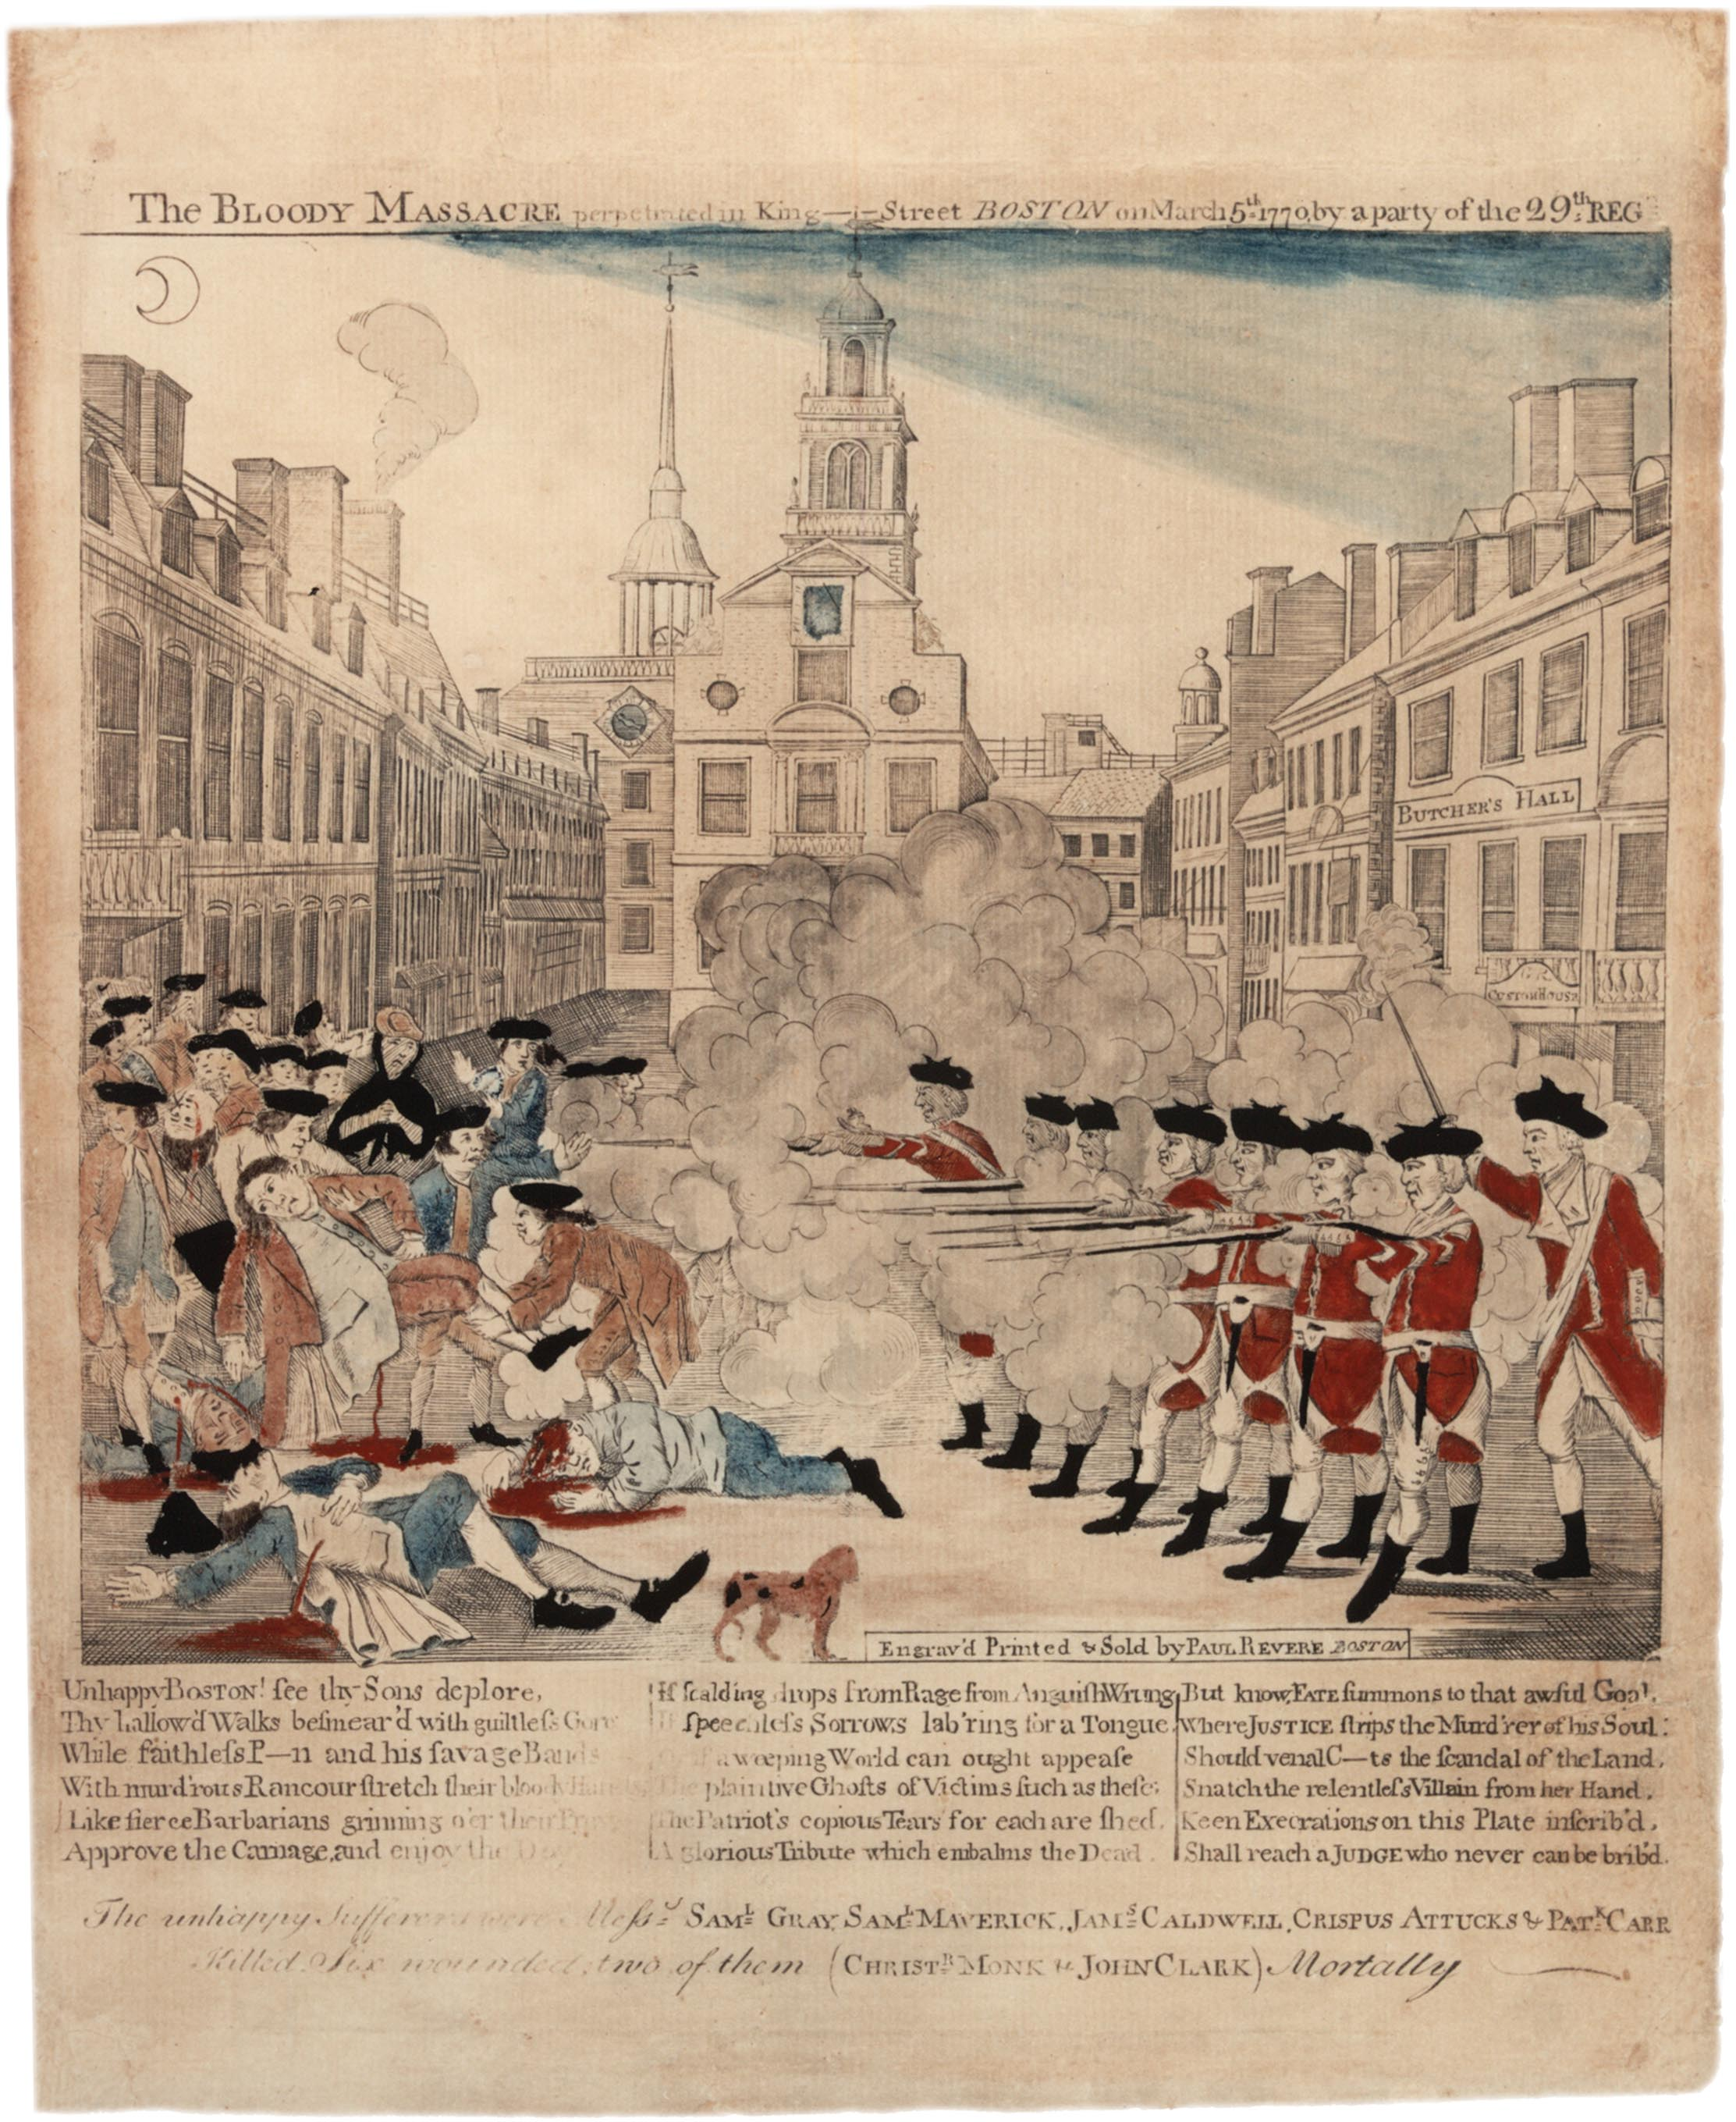 This famous depiction of the event was engraved by Paul Revere (copied from an engraving by Henry Pelham), colored by Christian Remick, and printed by Benjamin Edes. The Old State House is depicted in the background.